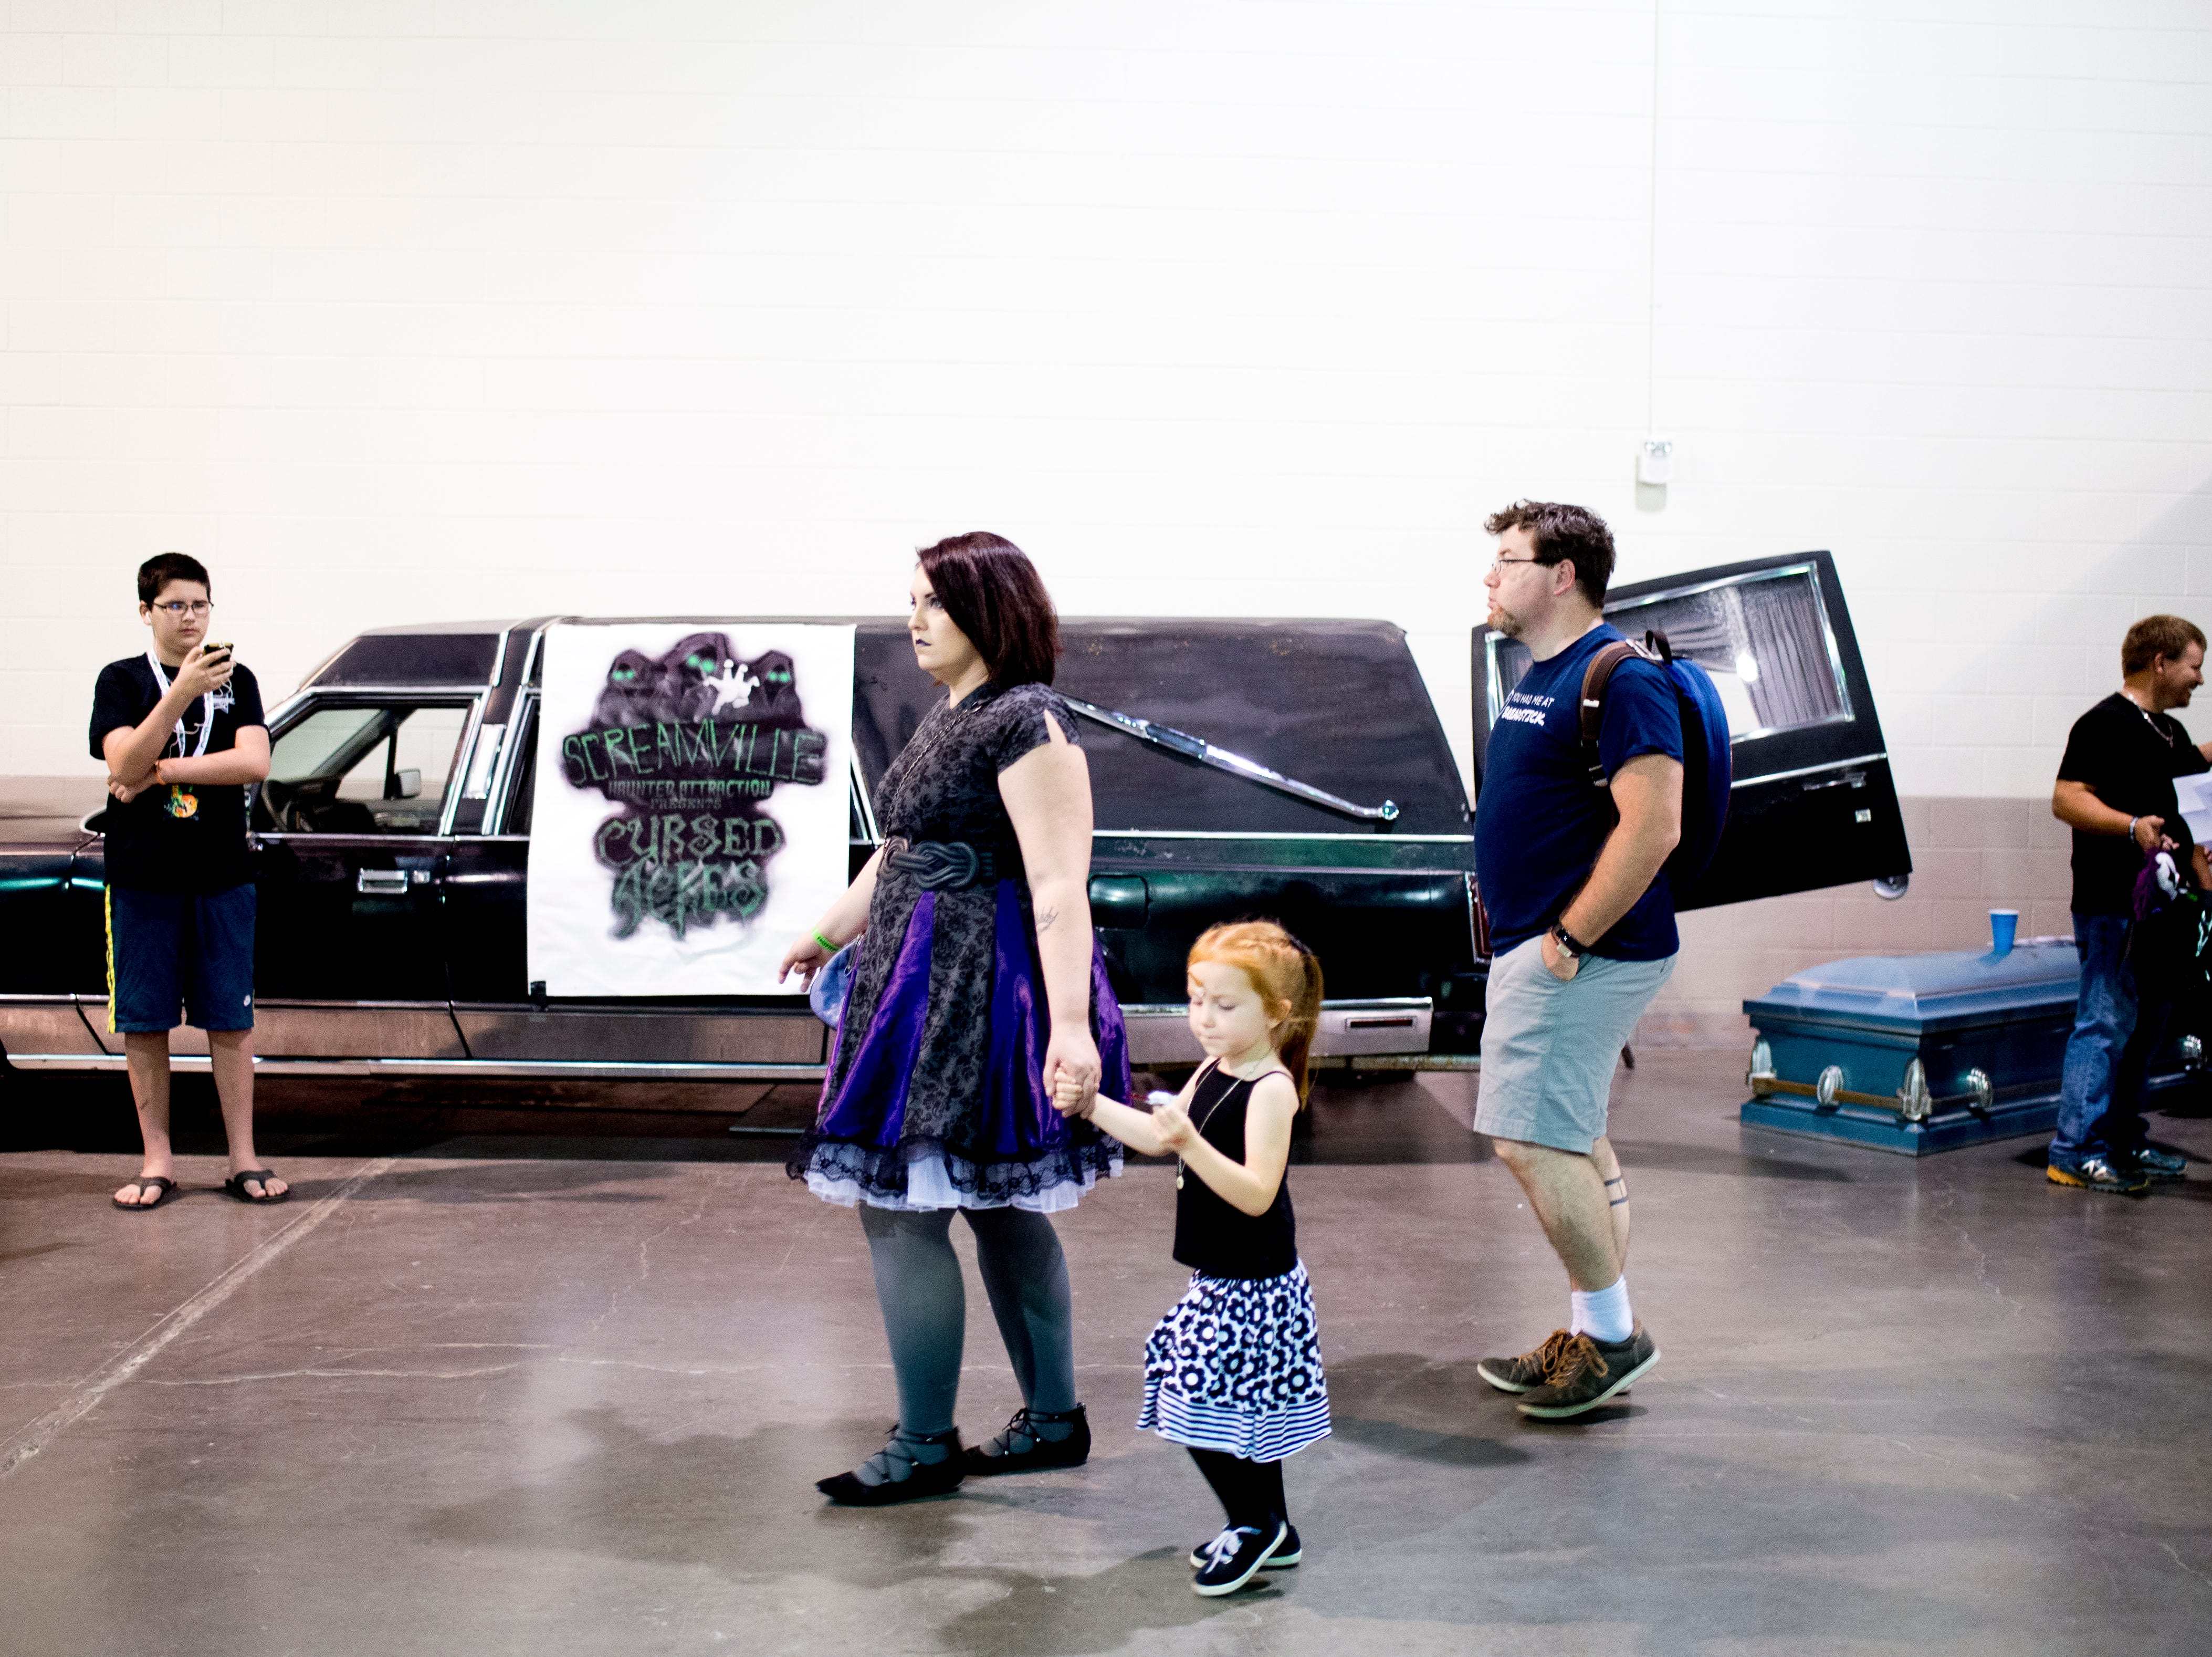 Visitors walk by a vintage hearse during the annual Knoxville CreepyCon at the World's Fair Exhibition Hall in Knoxville, Tennessee on Saturday, August 25, 2018. The event featured performers, a zombie beauty contest, workshops and a wide selection of vendors.